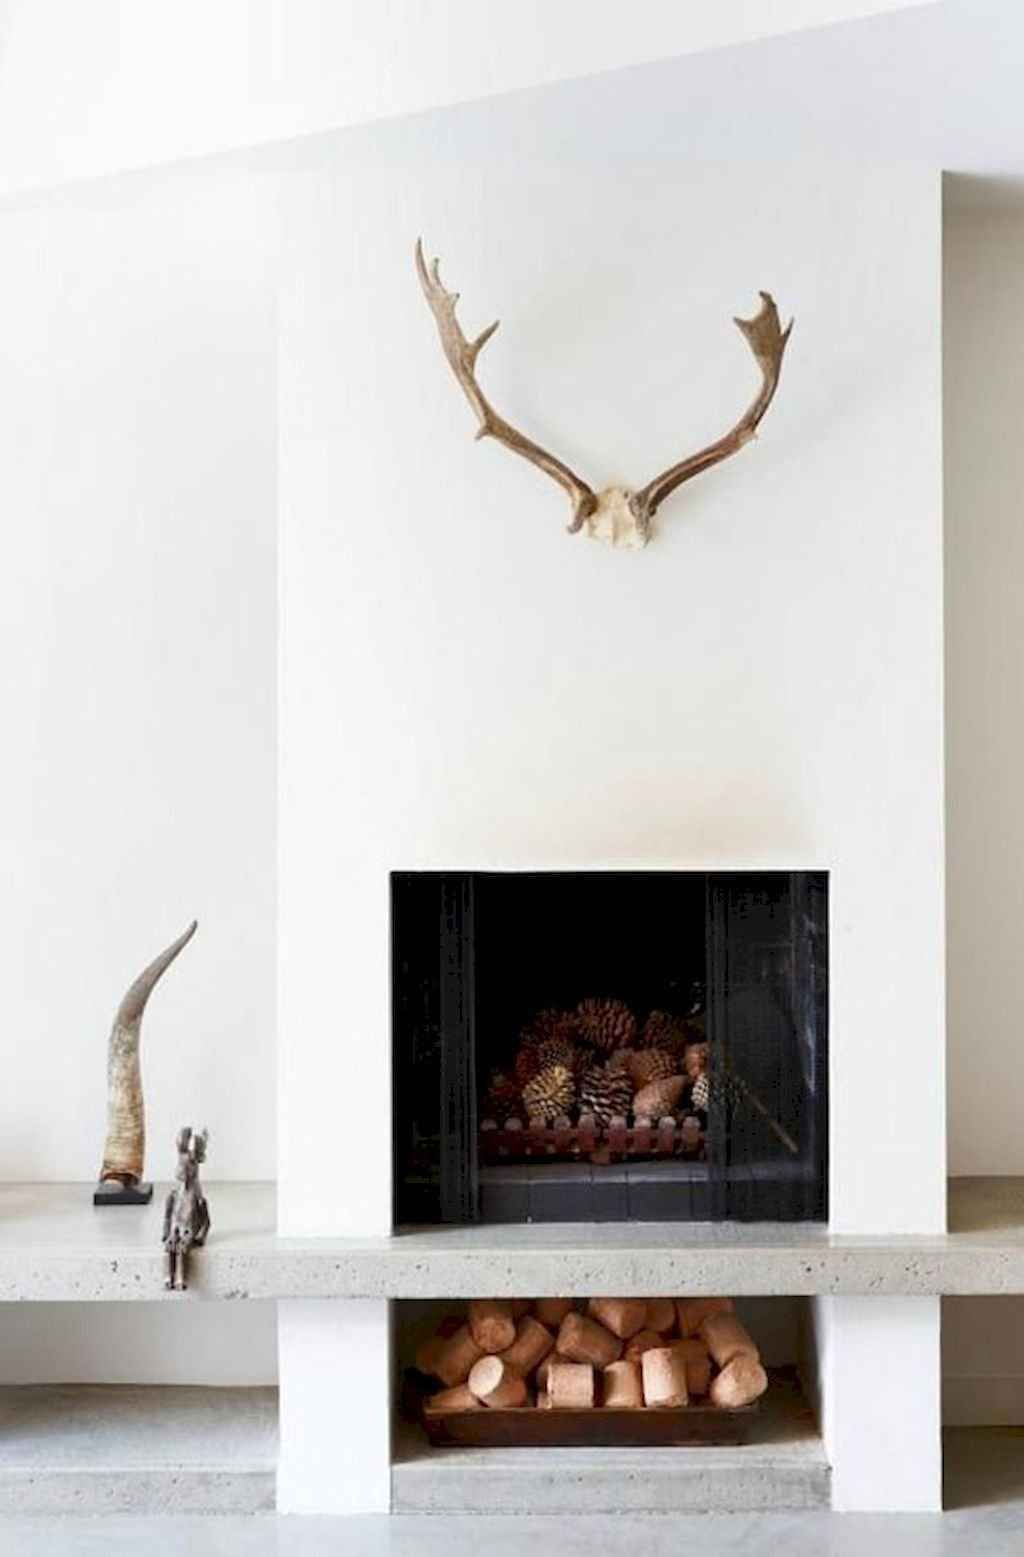 Cool Scandinavian Fireplace Design Ideas To Amaze Your Guests 22